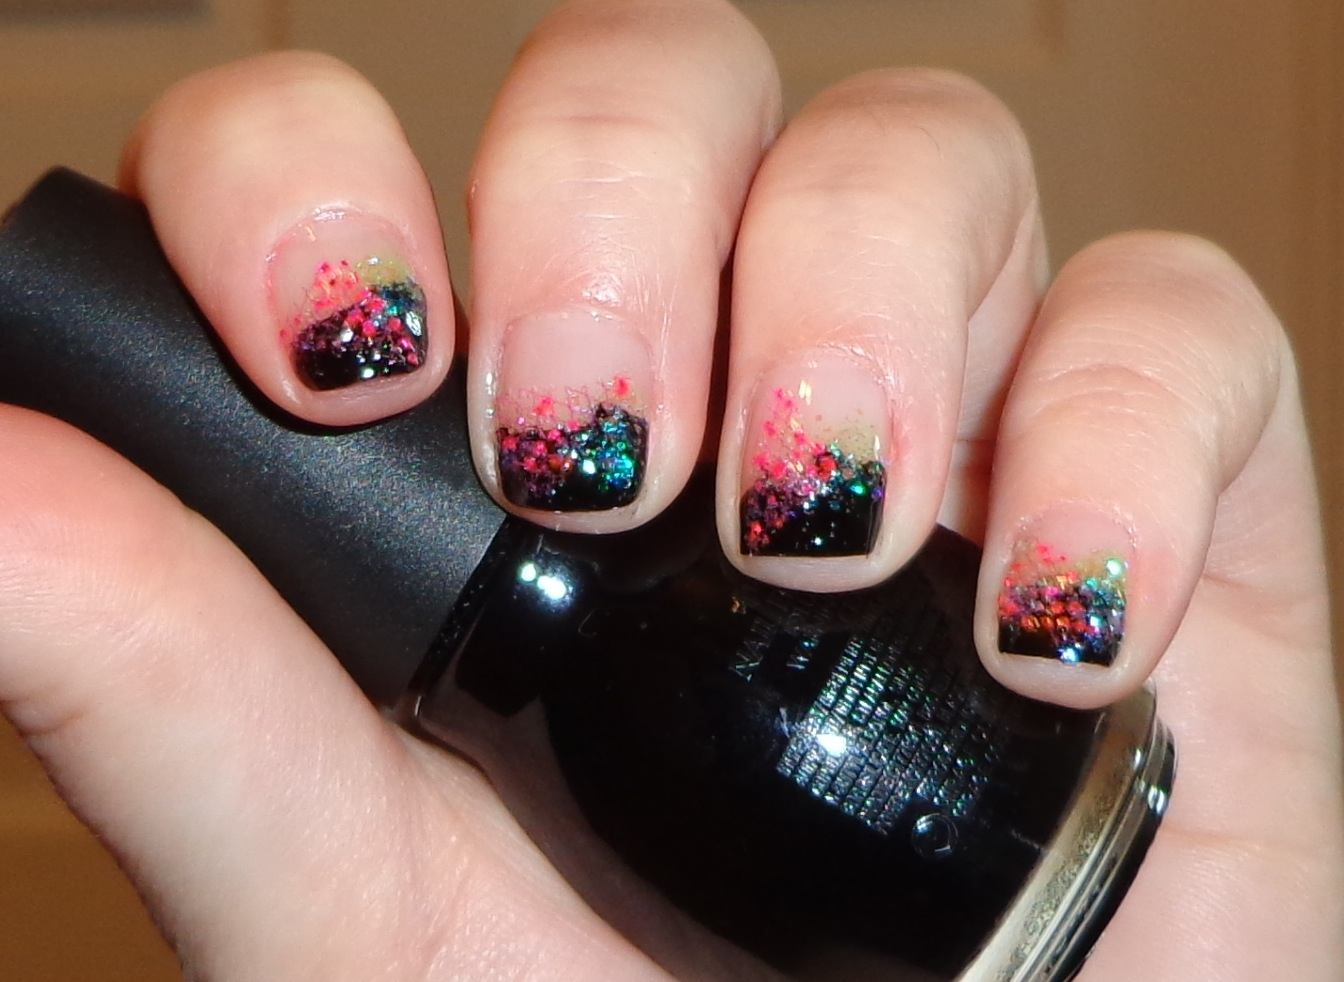 Nails Designs 2013 This design worked on my short